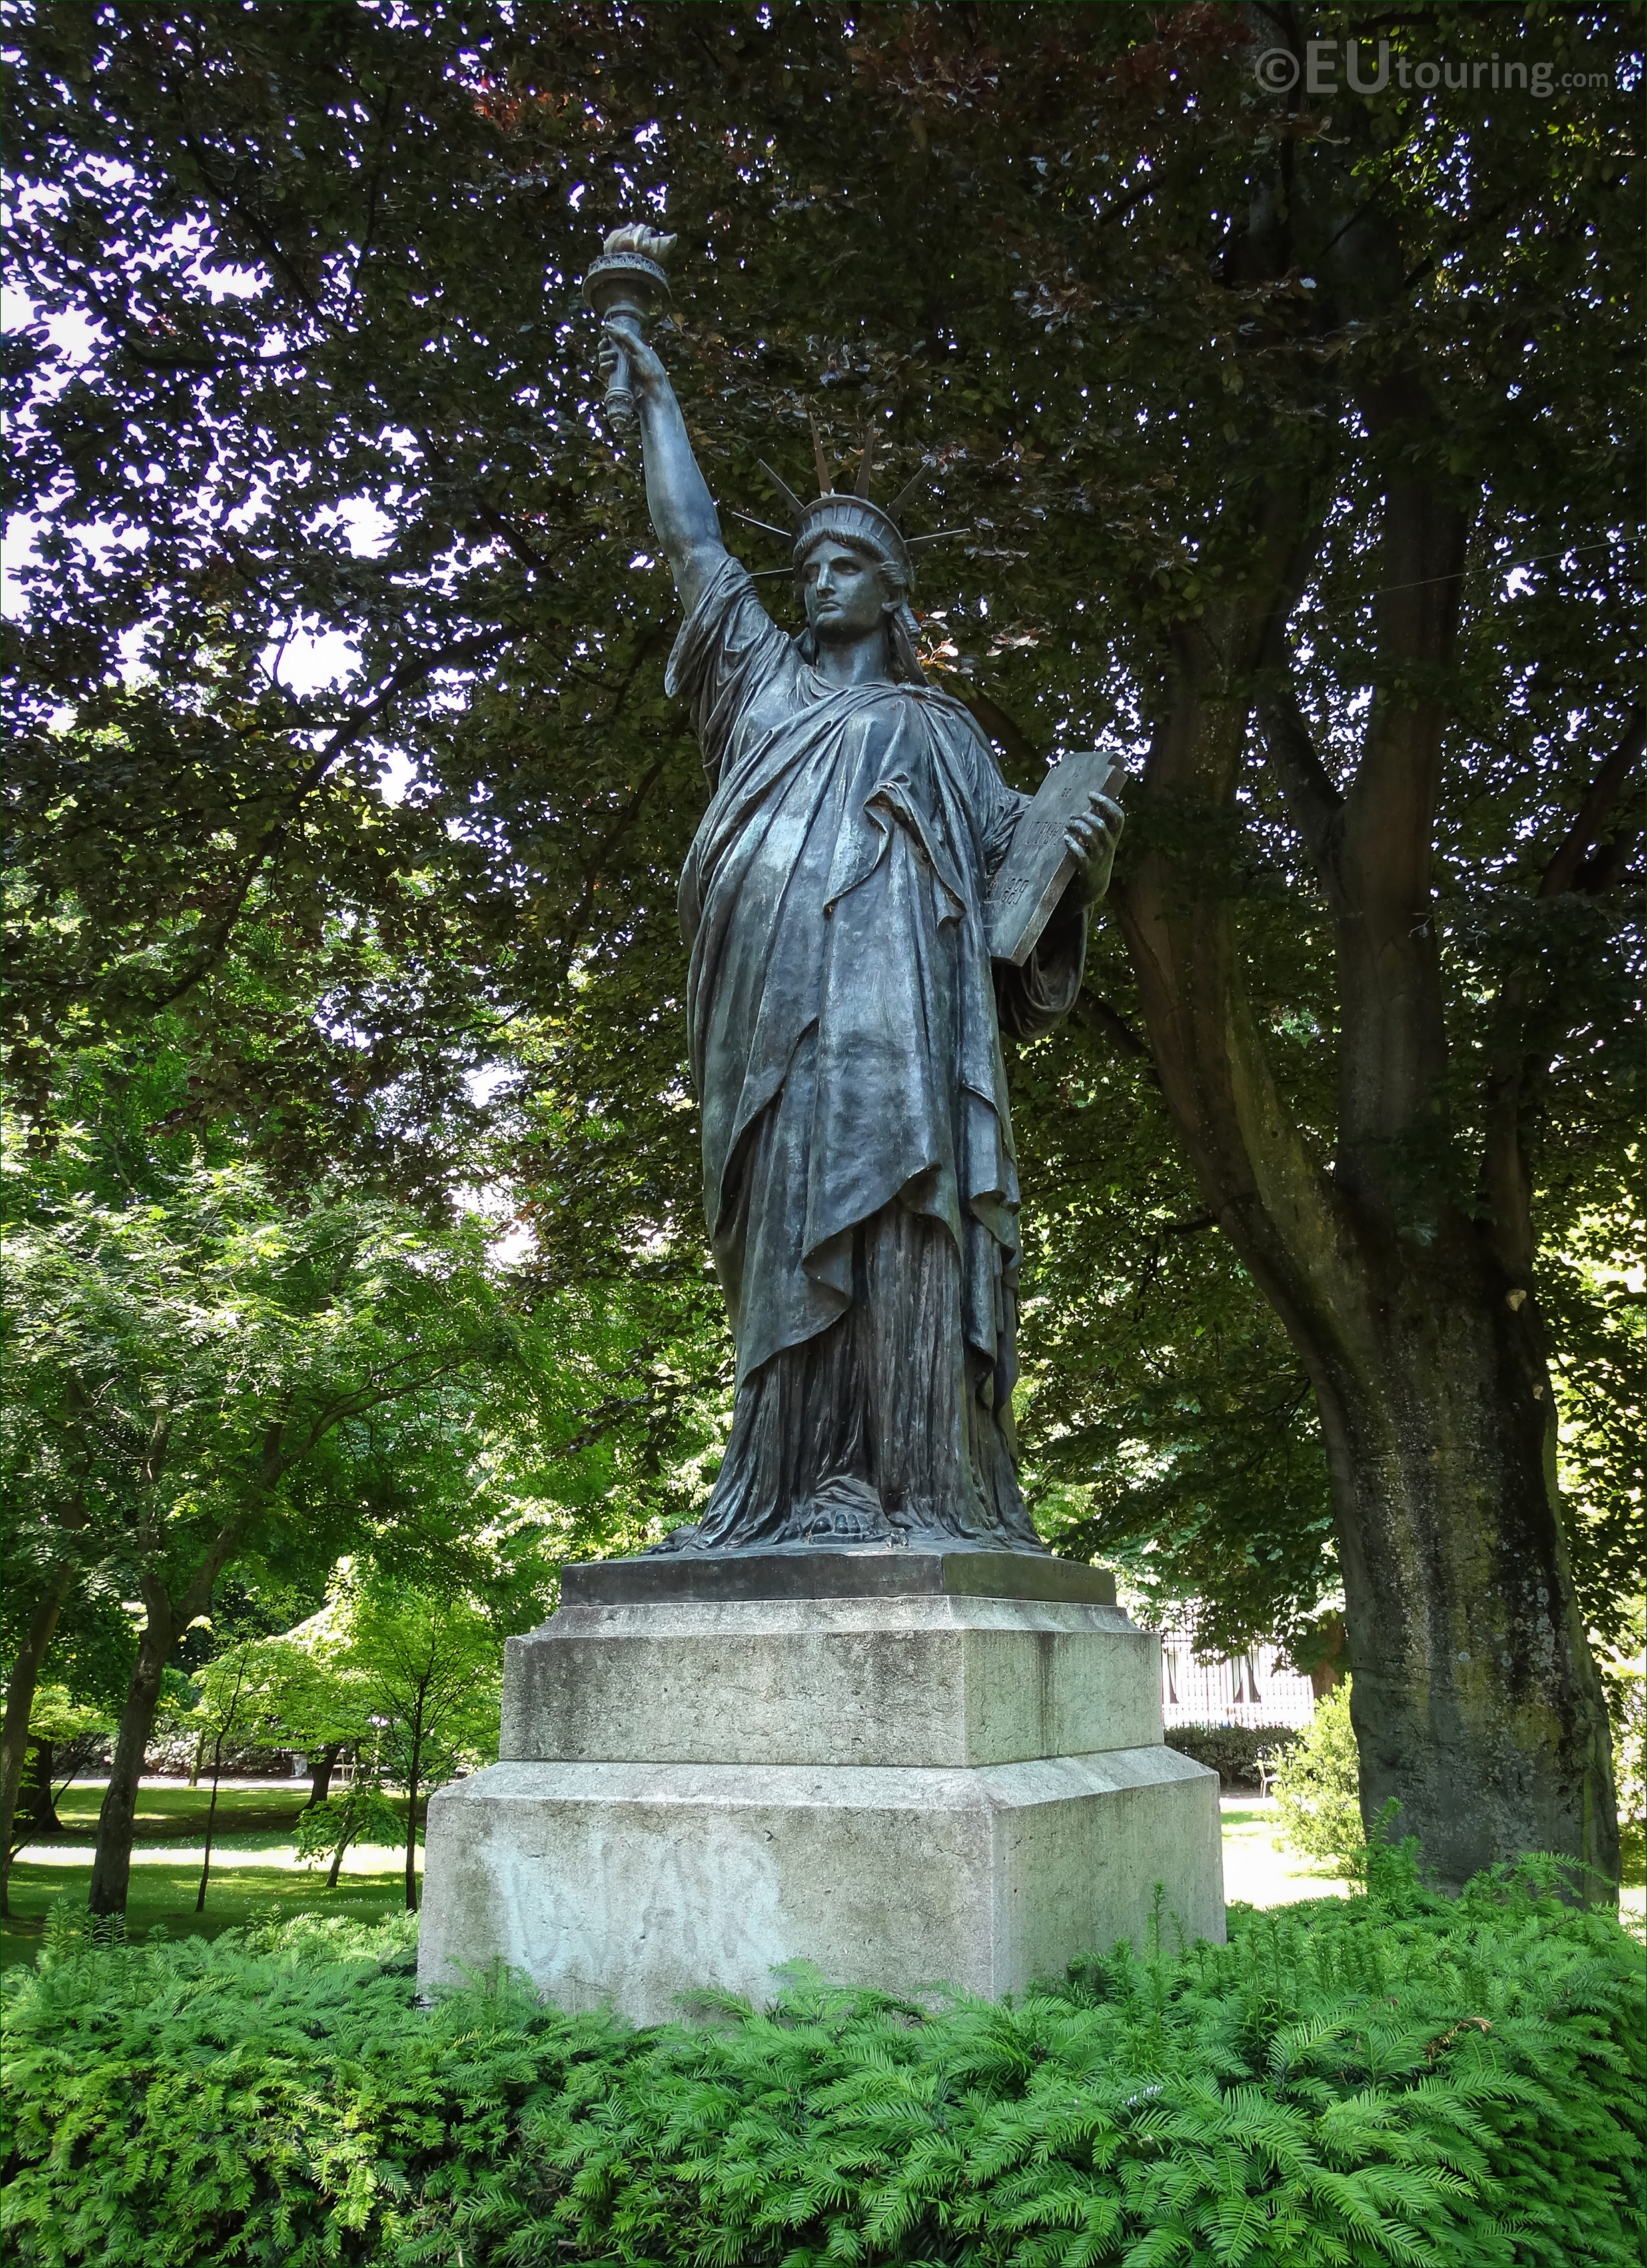 Photos Of Statue Of Liberty In Luxembourg Gardens Paris Page - Where is the statue of liberty located